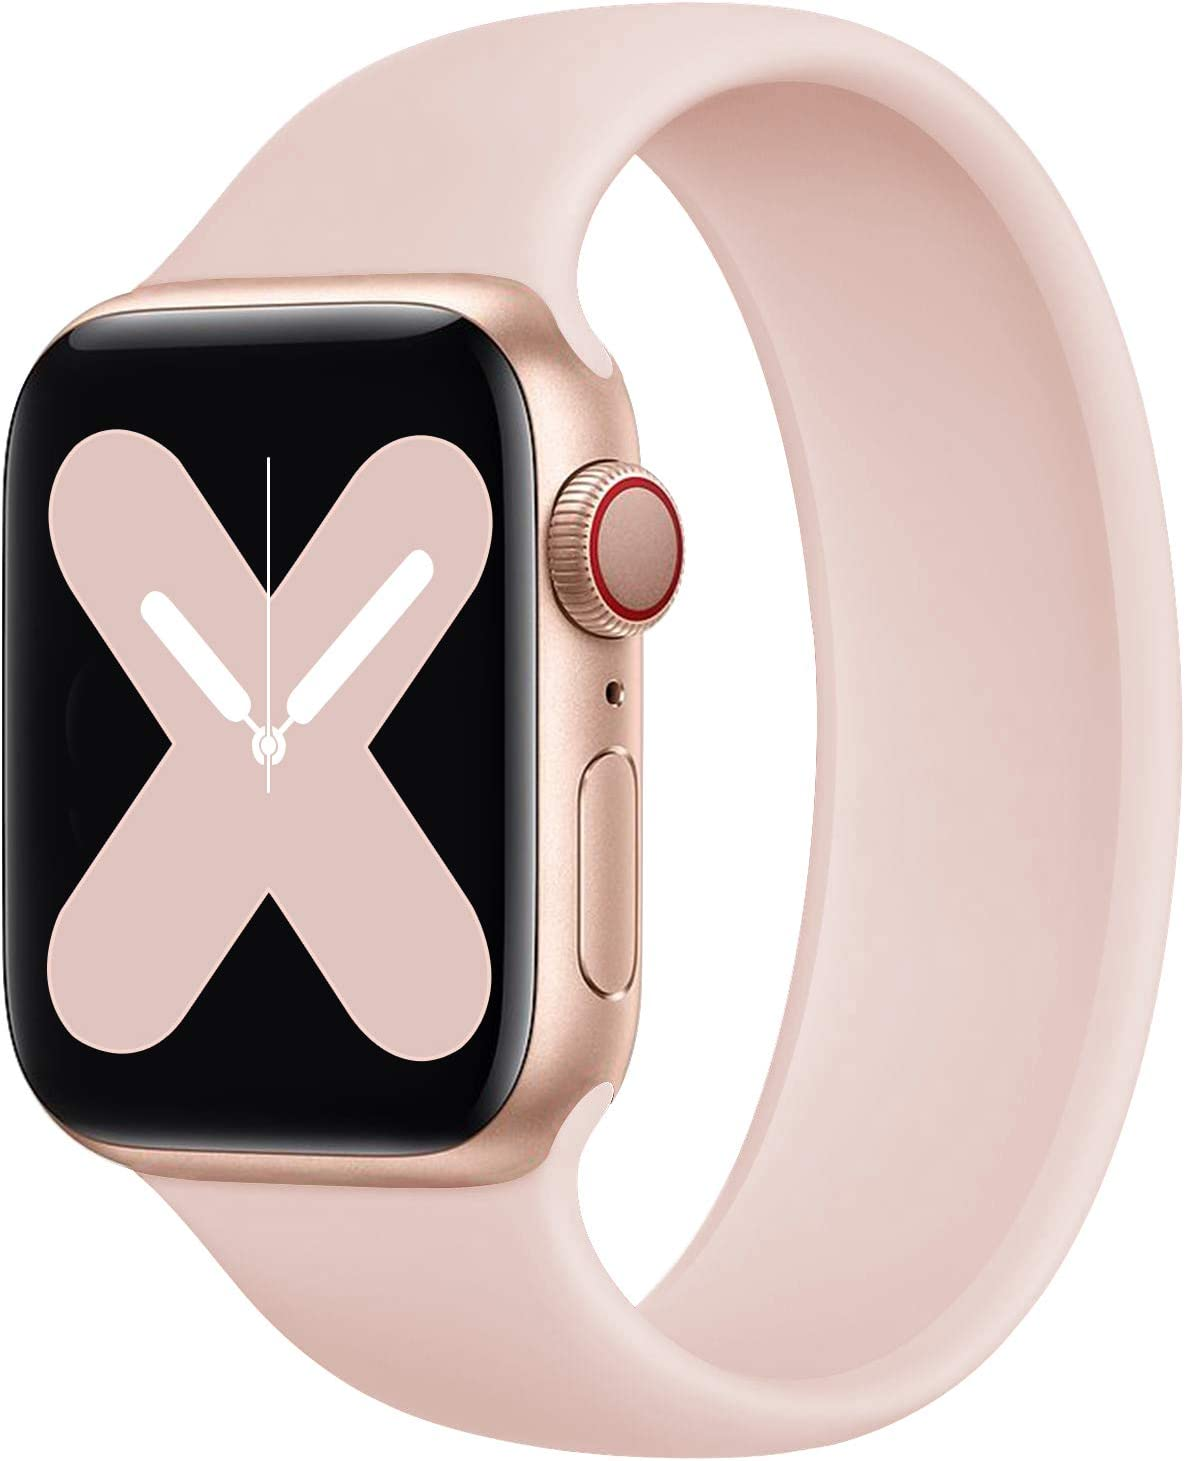 Rain gold Stretchy Solo Loop Strap Compatible with Apple Watch Band 38mm 40mm 42mm 44mm, No Clasps or Buckles Sport Elastics Silicone Women Men Replacement Wristband for iWatch Series 6/SE/5/4/3/2/1